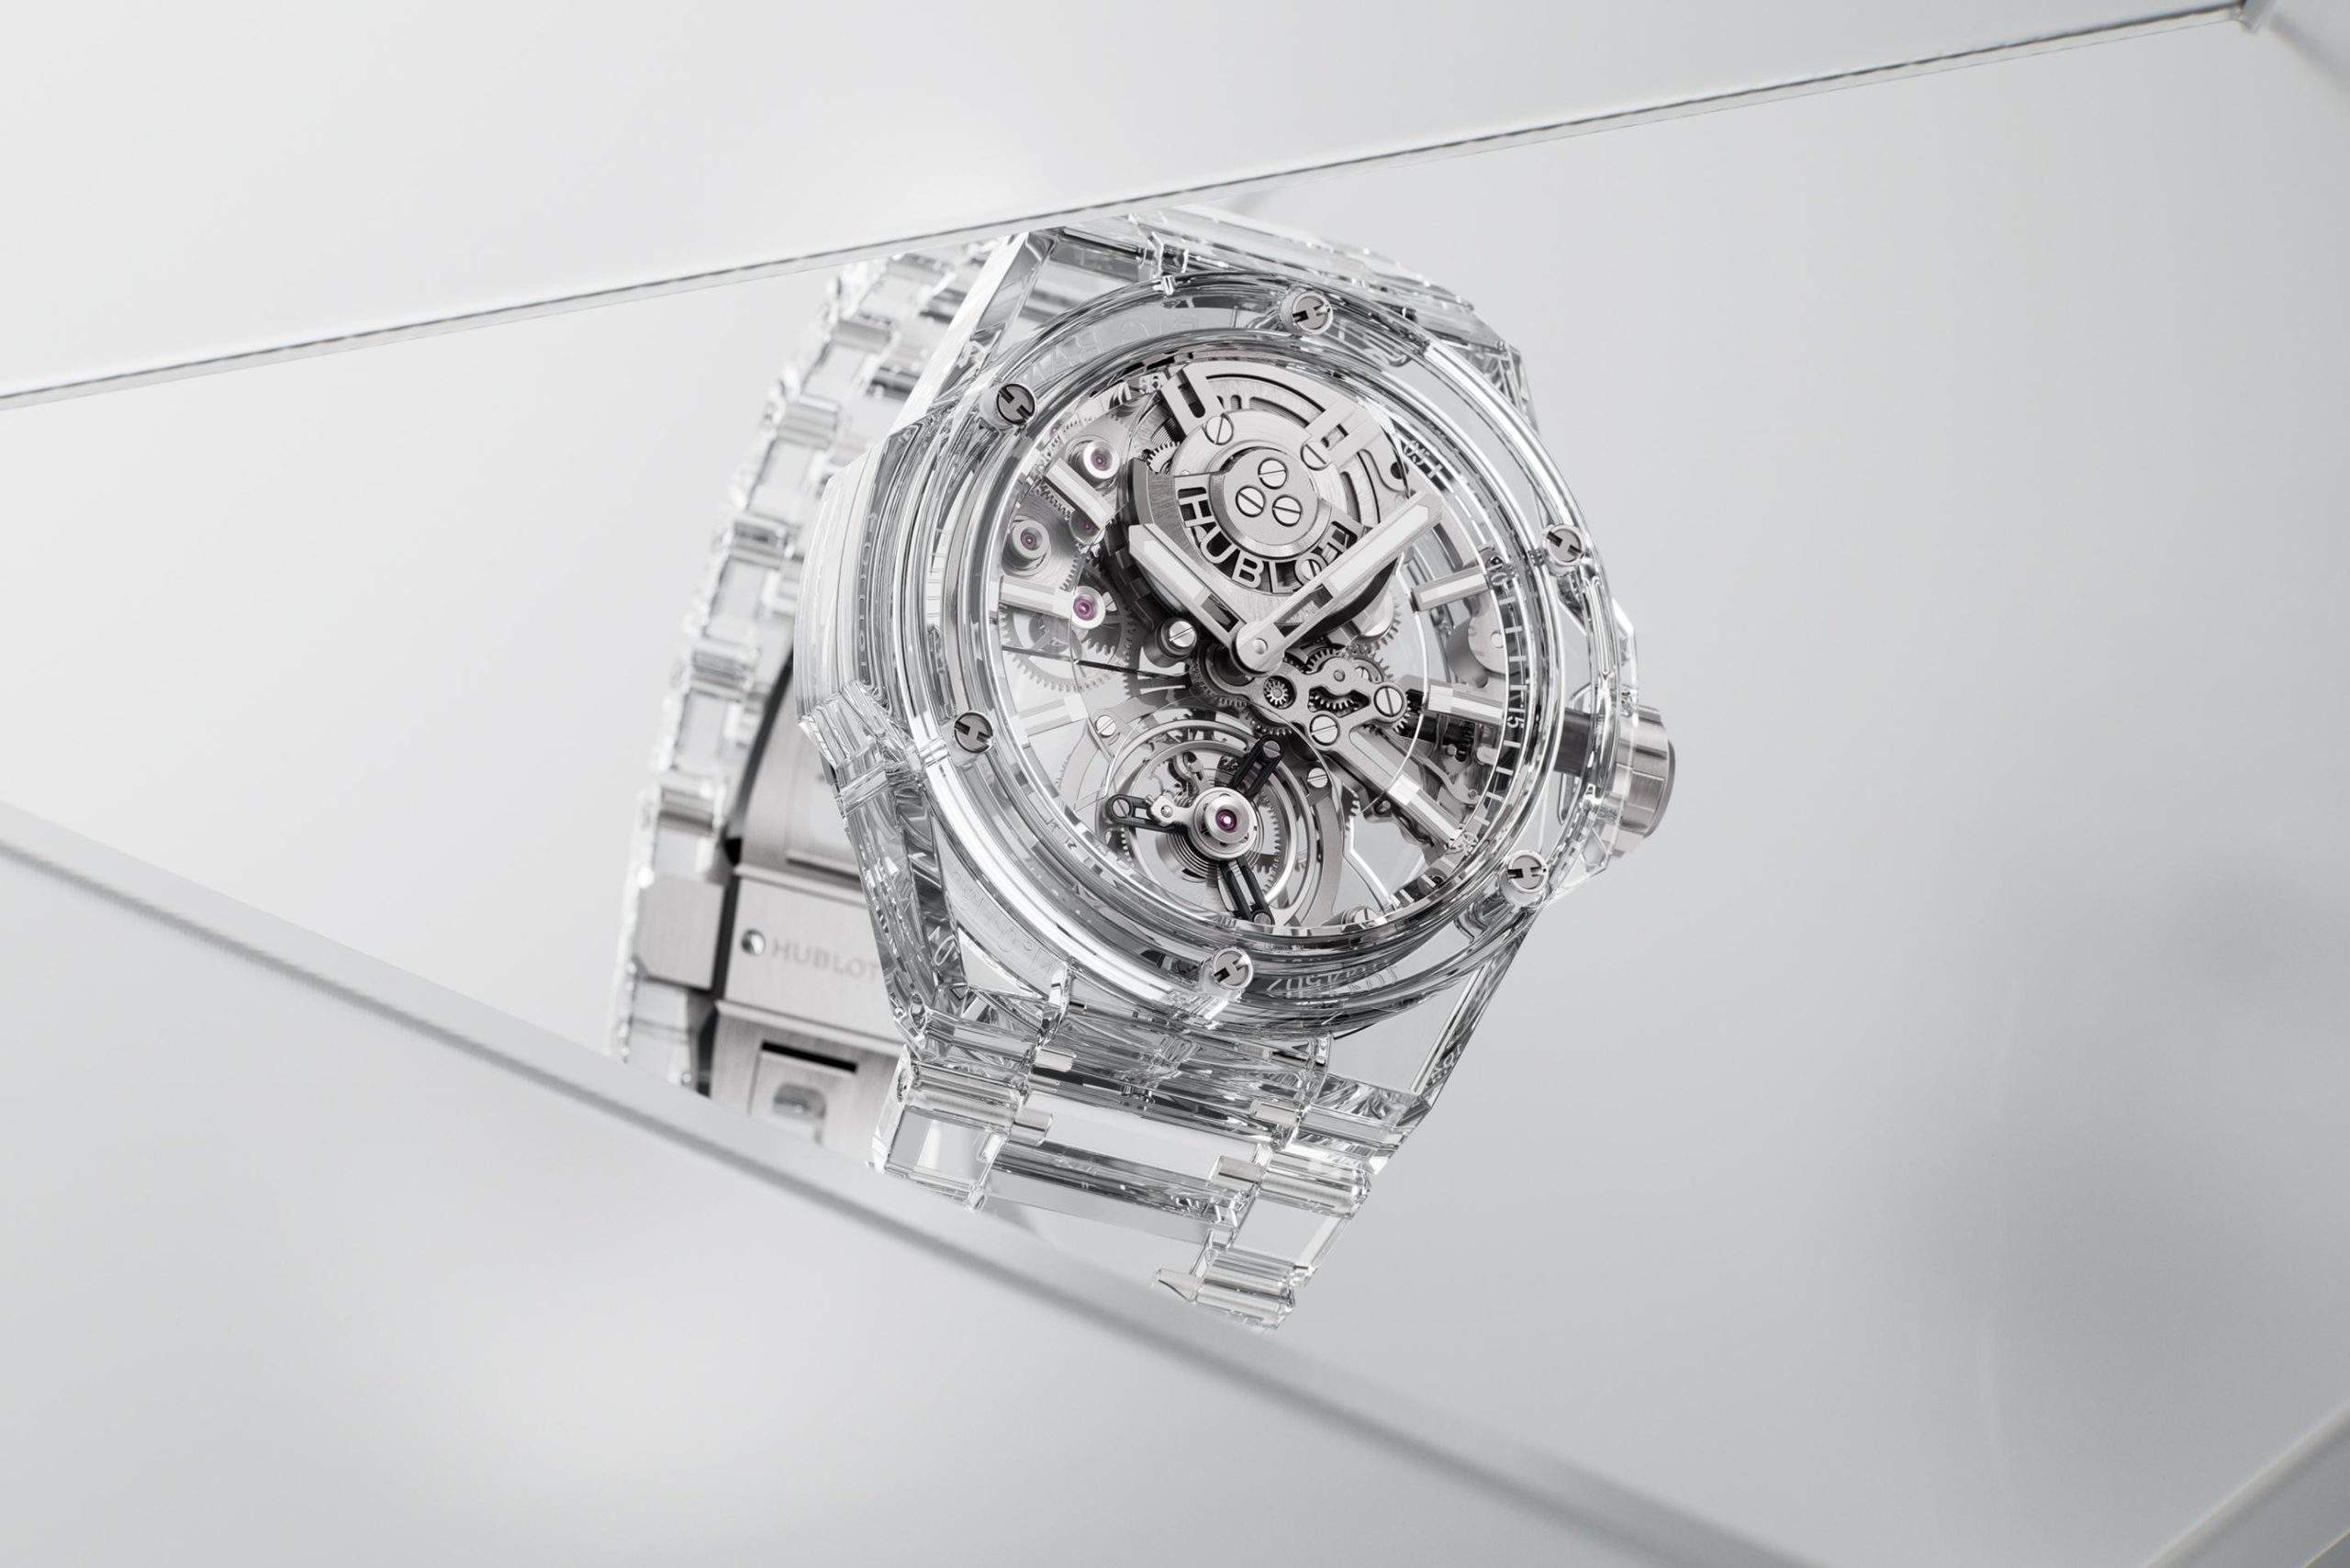 Hublot has released the first solid sapphire watch.